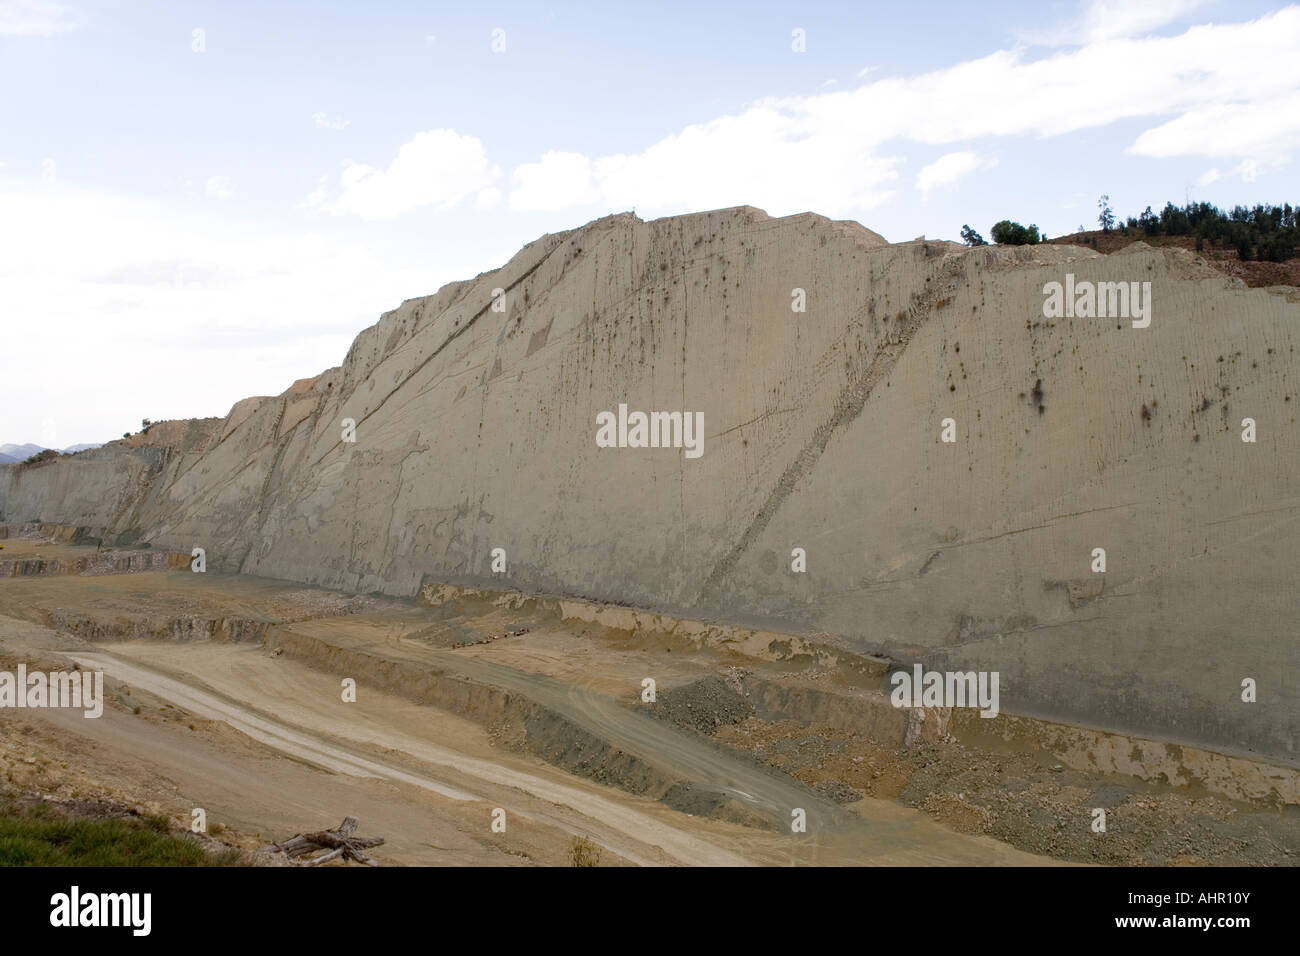 The Dinosaur footprints at the Cal Orko Mountain in a cement factory quarry near Sucre, Altiplano, Bolivia - Stock Image